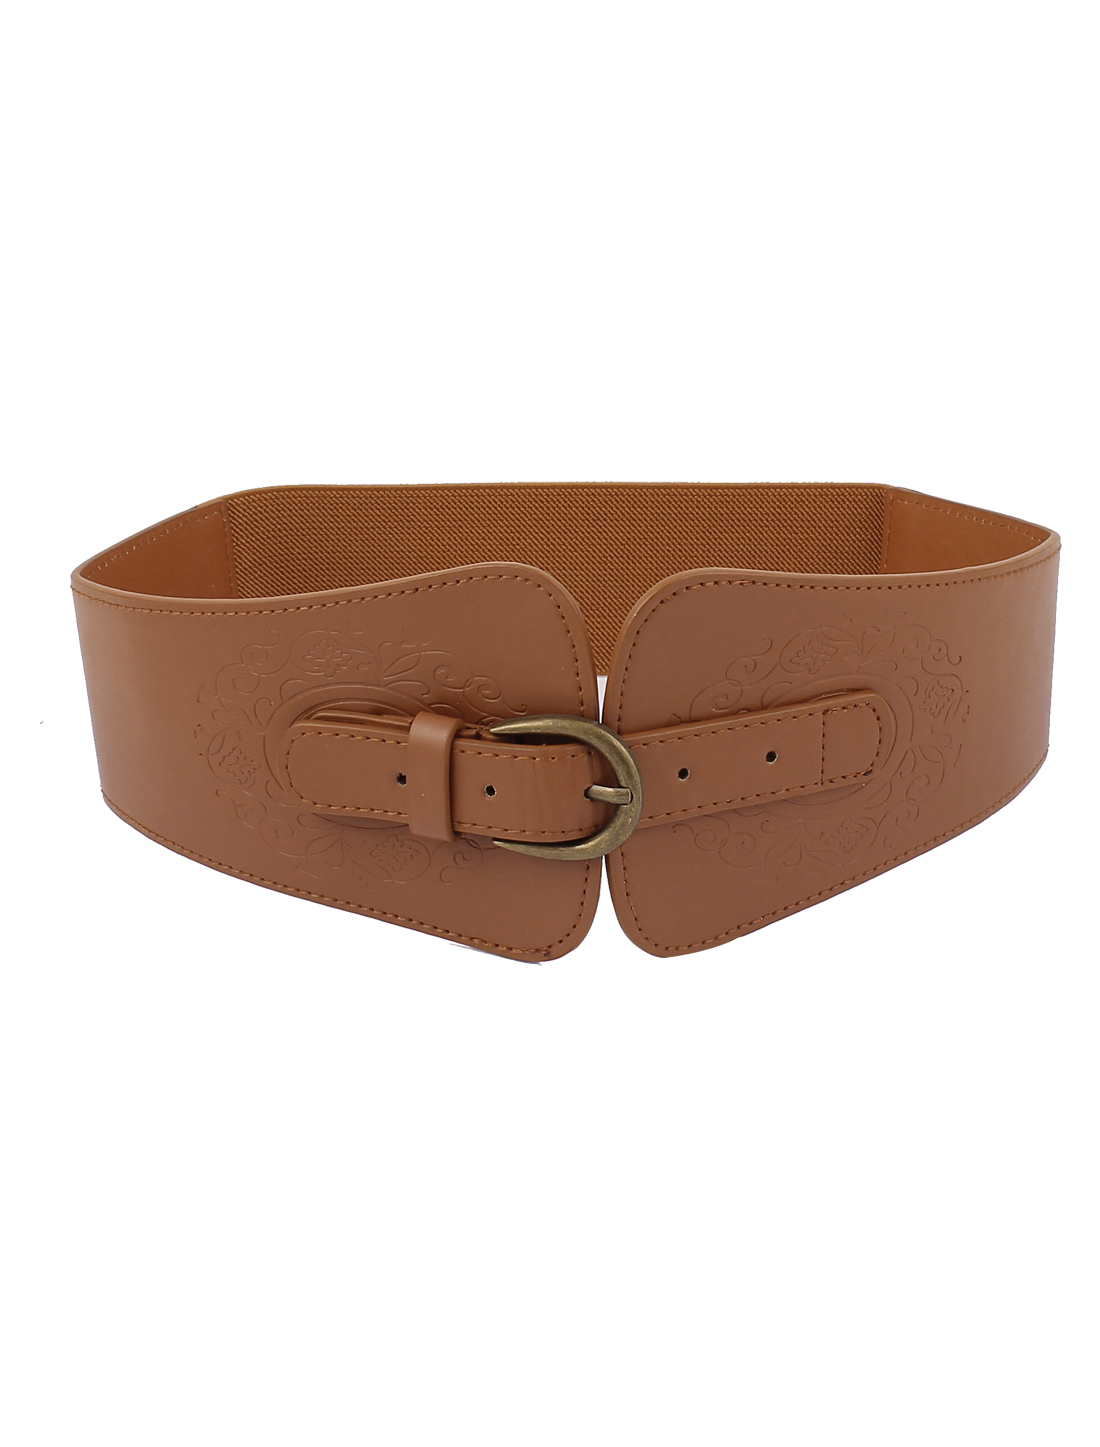 Women Metal Single Buckle Elastic Wide Cinch Waistbelt Brown Bronze Tone